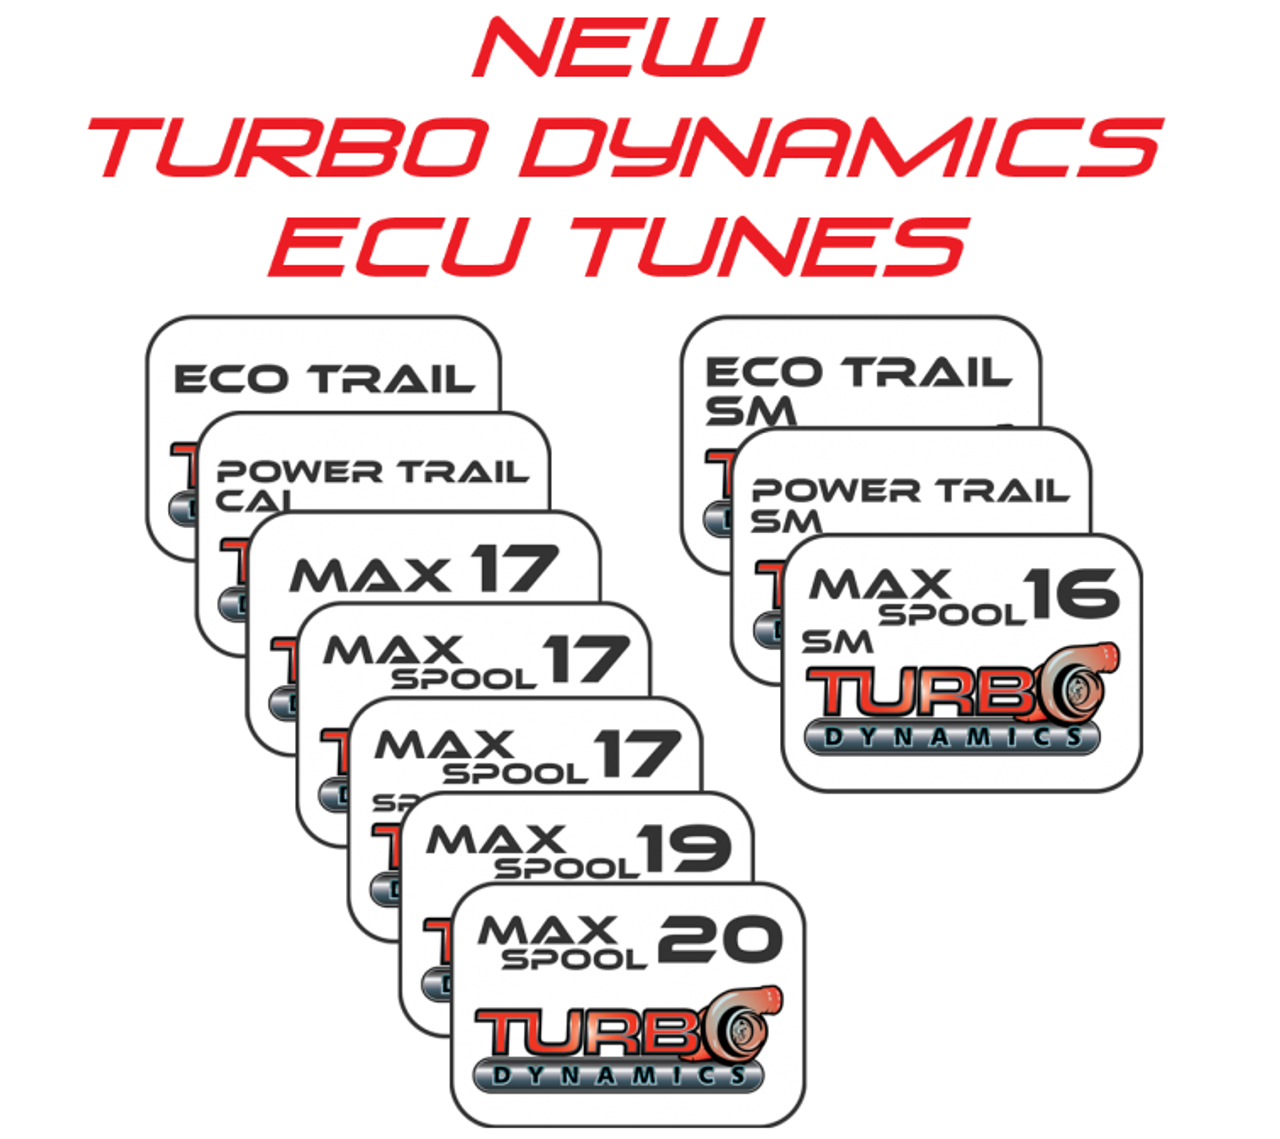 NEW Turbo Dynamics ECU tunes